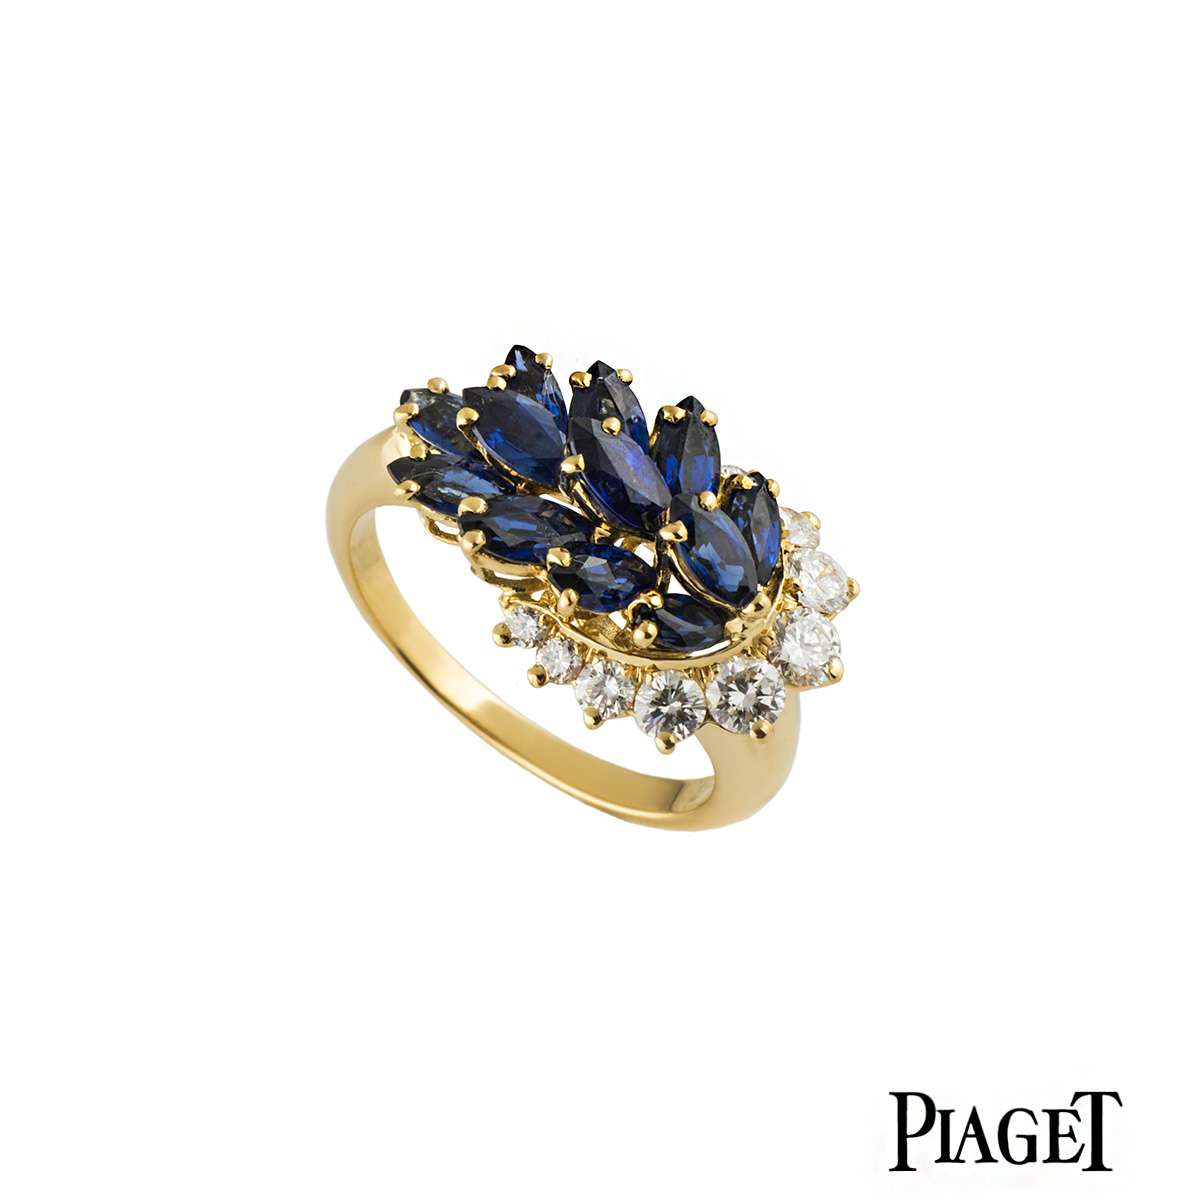 Piaget Diamond and Sapphire Dress Ring